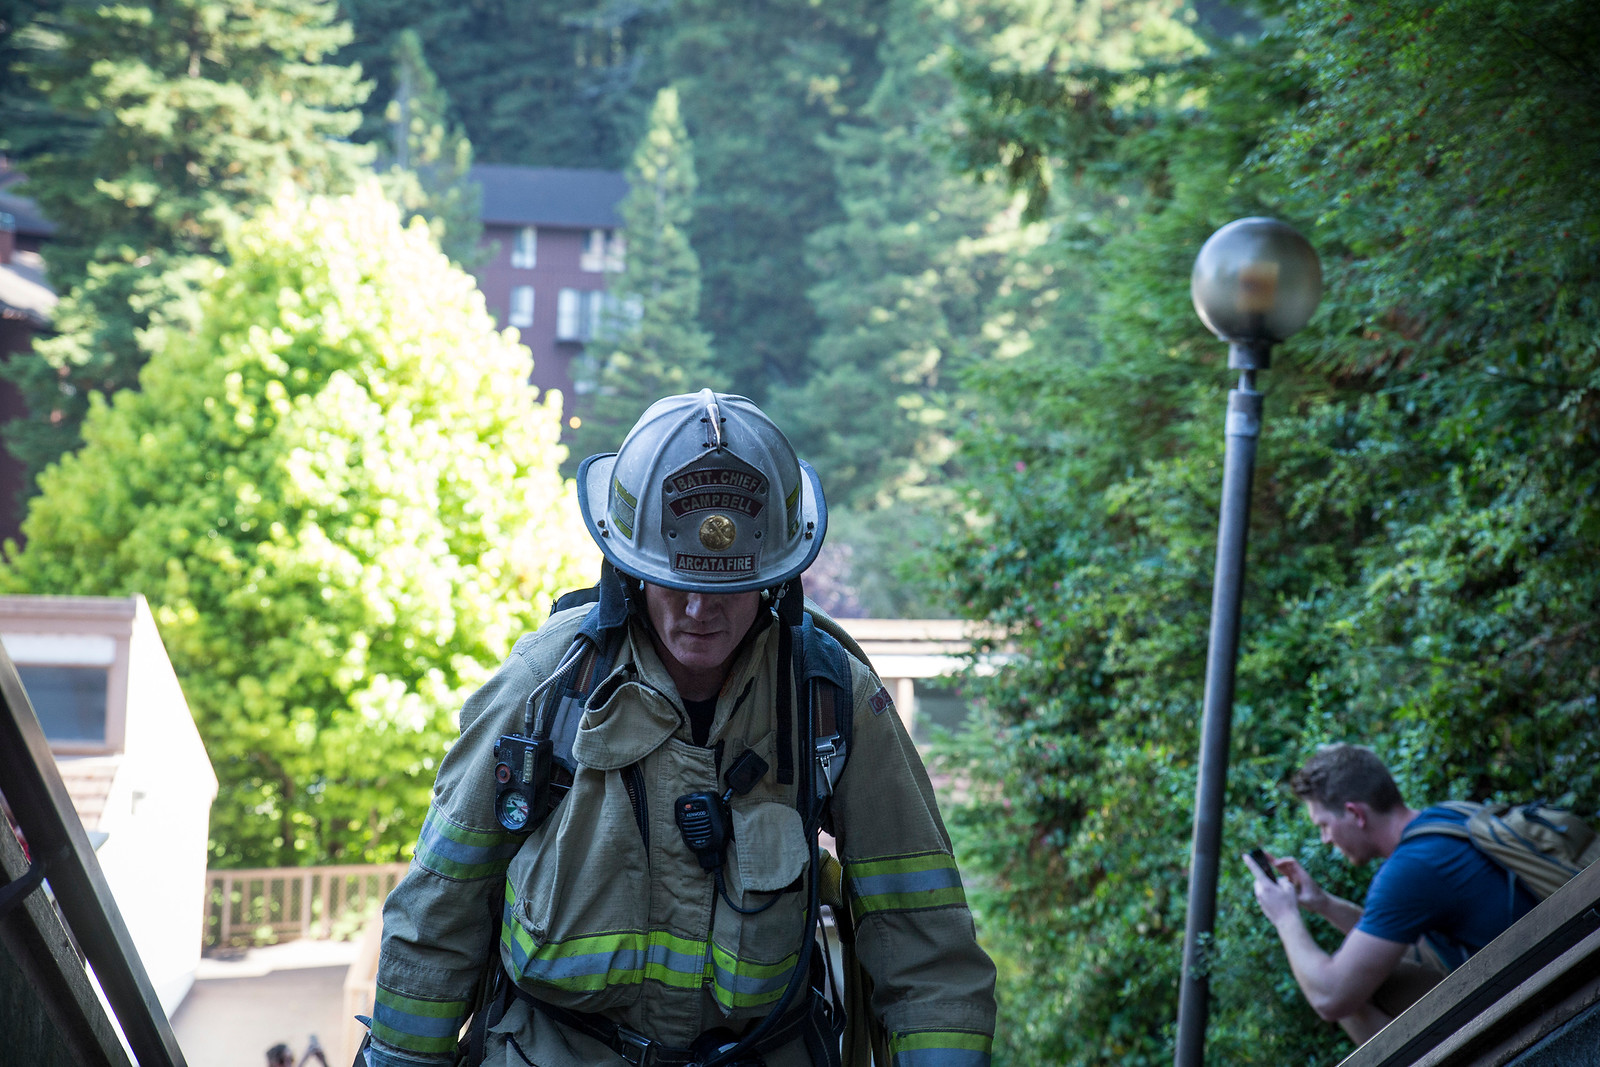 Battalion chief Sean Campbell makes it up to the top of the student dorms only to turn around a head back down. He carried a full pack, hose and equipment which is what he said the firefighters responding to the Sept. 11 attacks would have been wearing. He said his community drives him to climb. (Sam Armanino - Times-Standard)